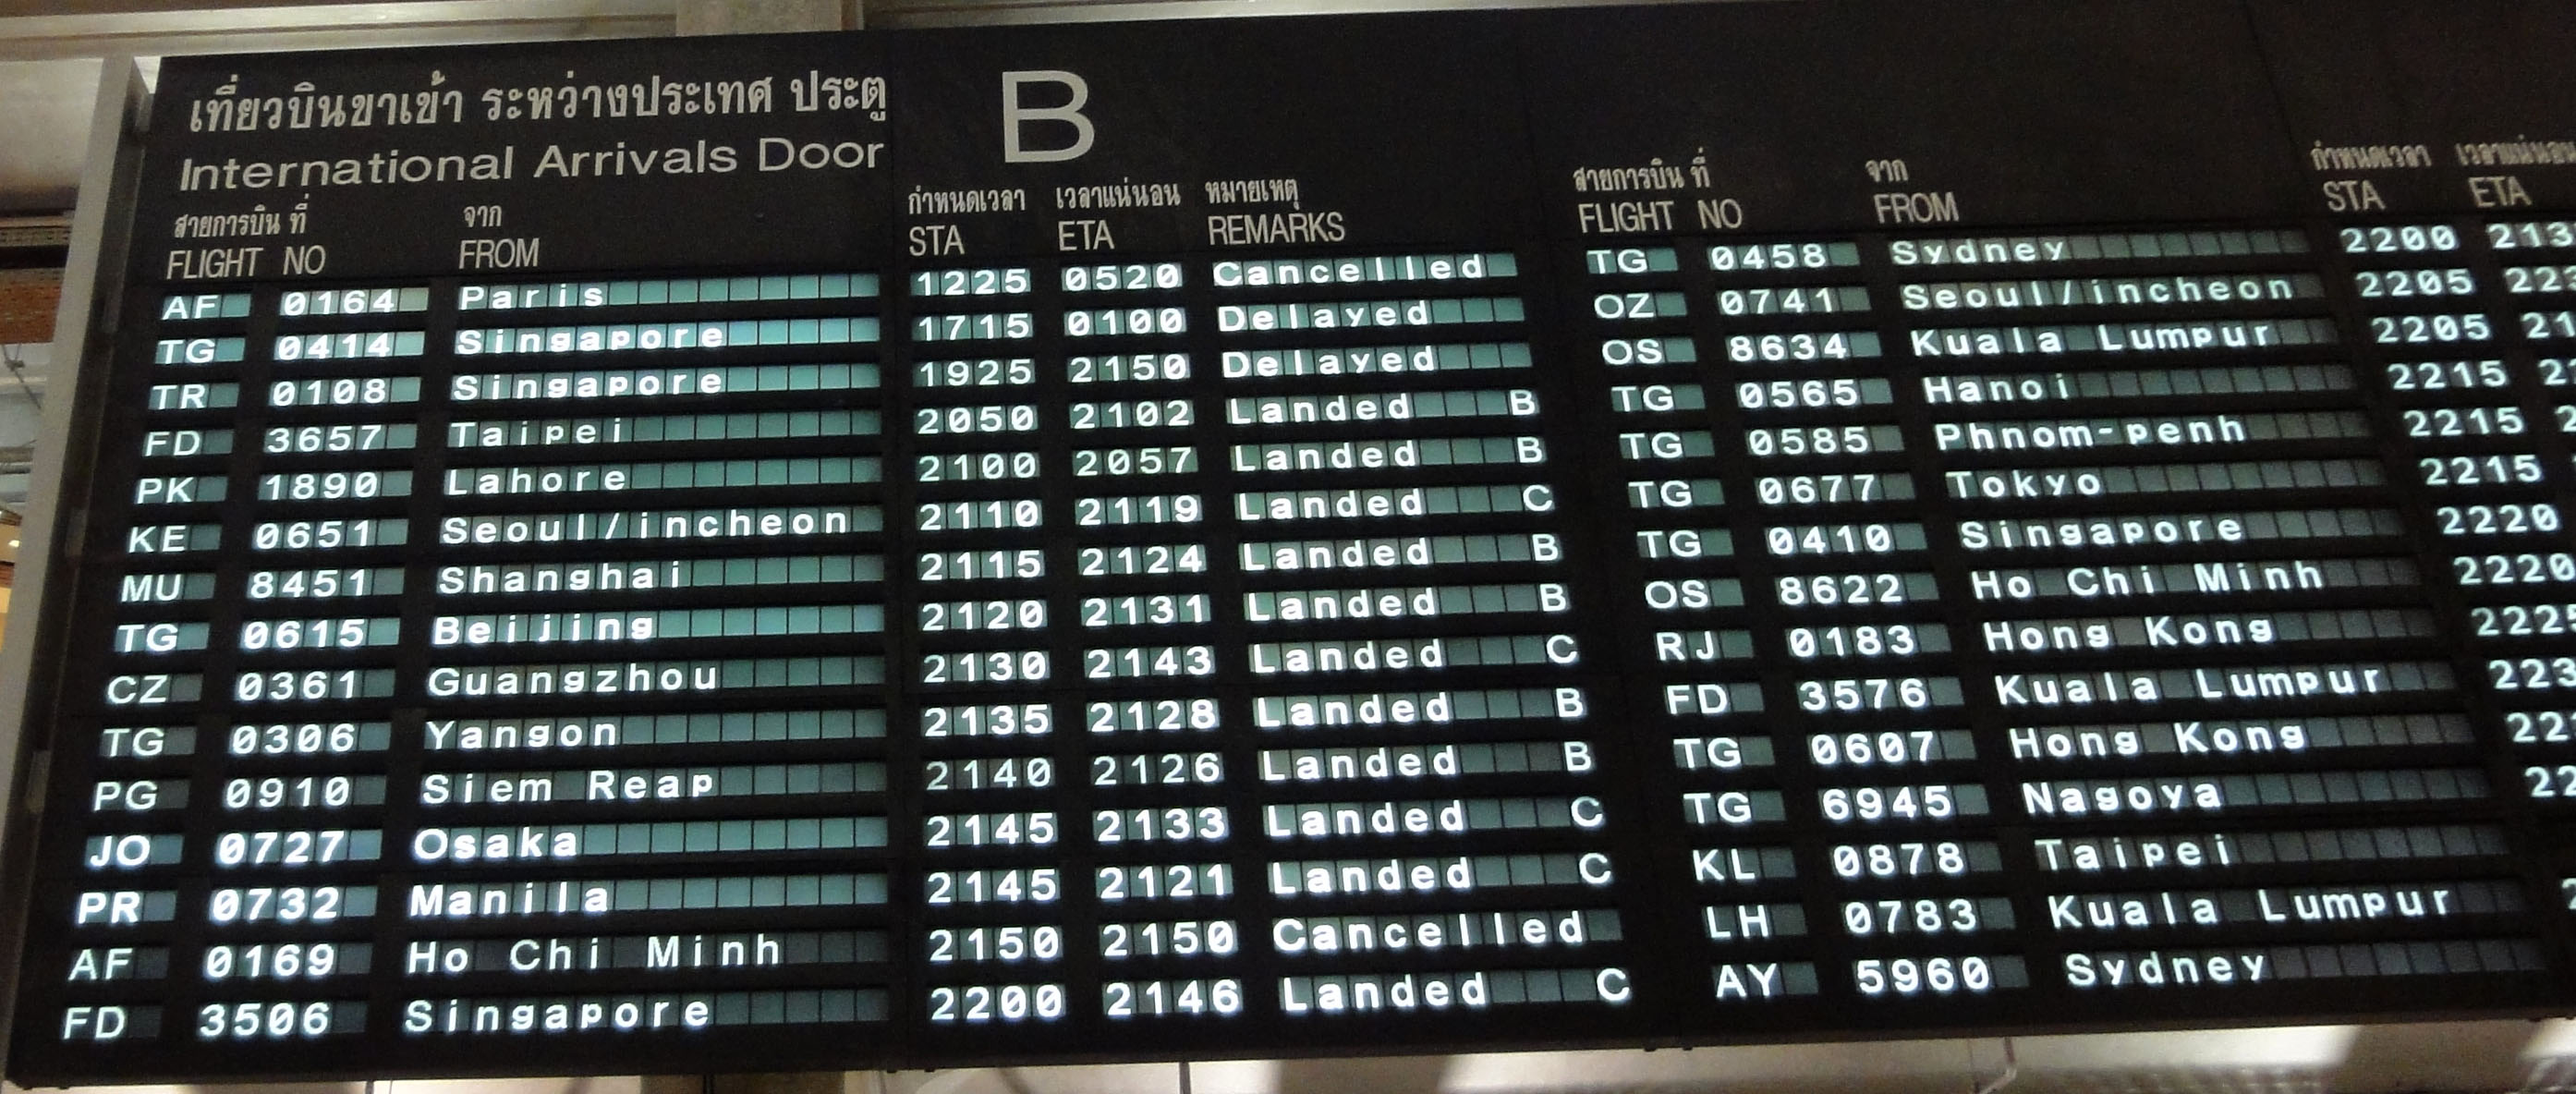 Flight Arival and Departure boards Suvarnabhumi Airport Thailand 2009 06